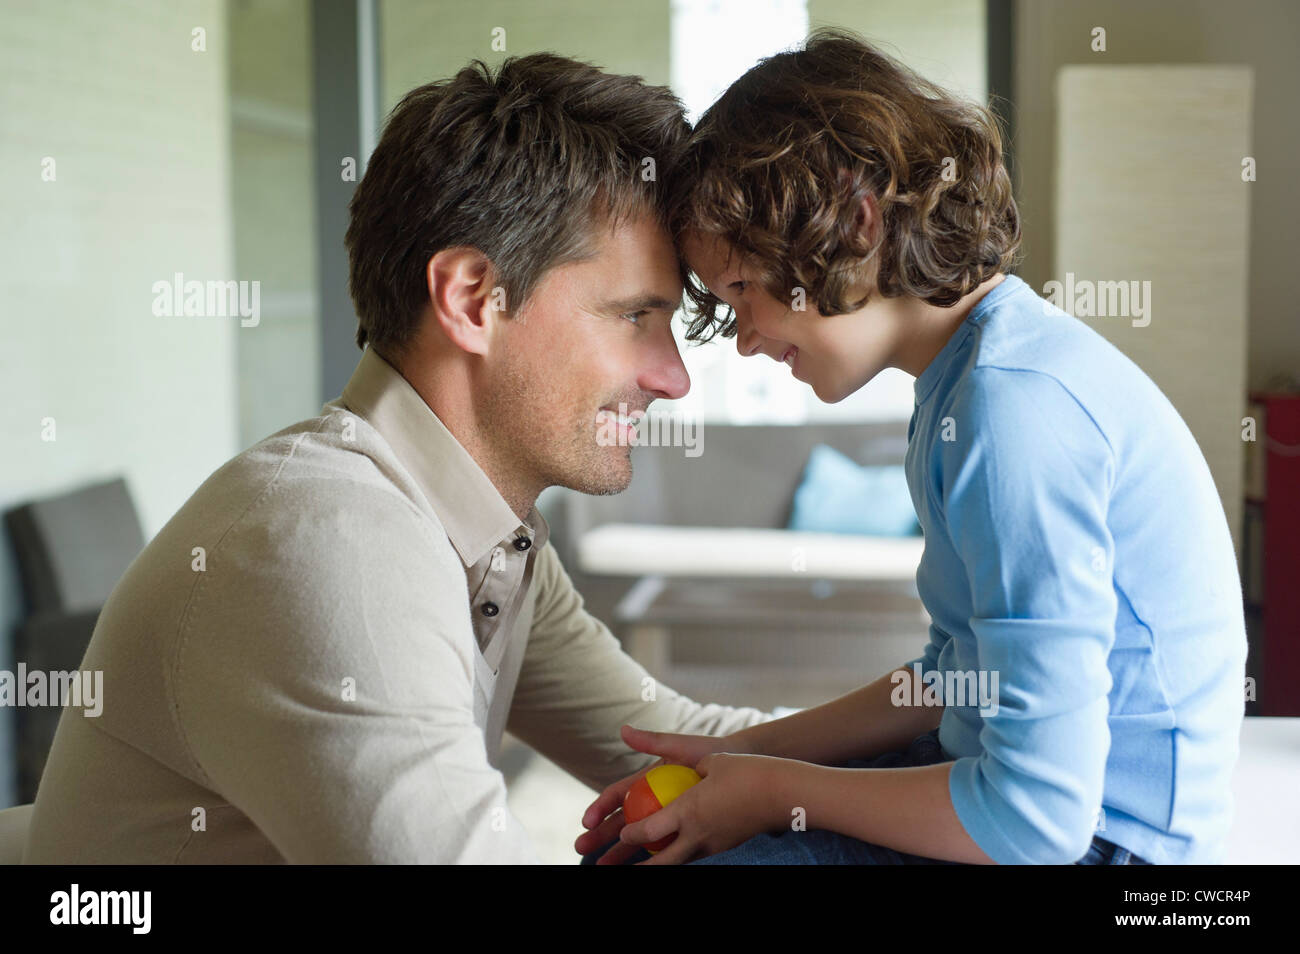 Man with his son face to face and smiling - Stock Image